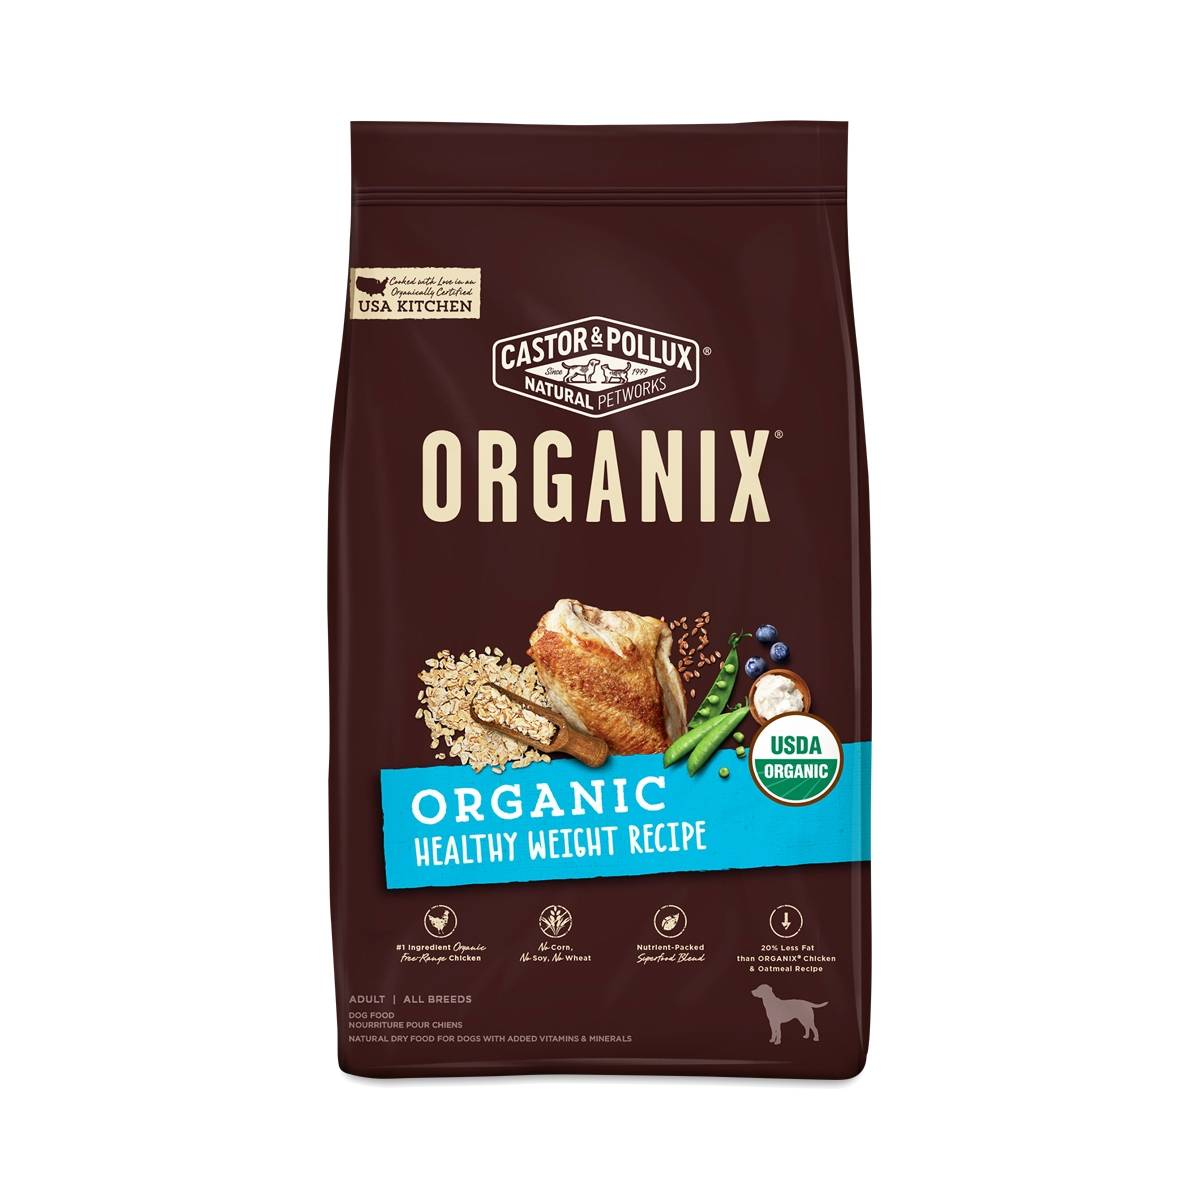 Certified Organic Dry Dog Food